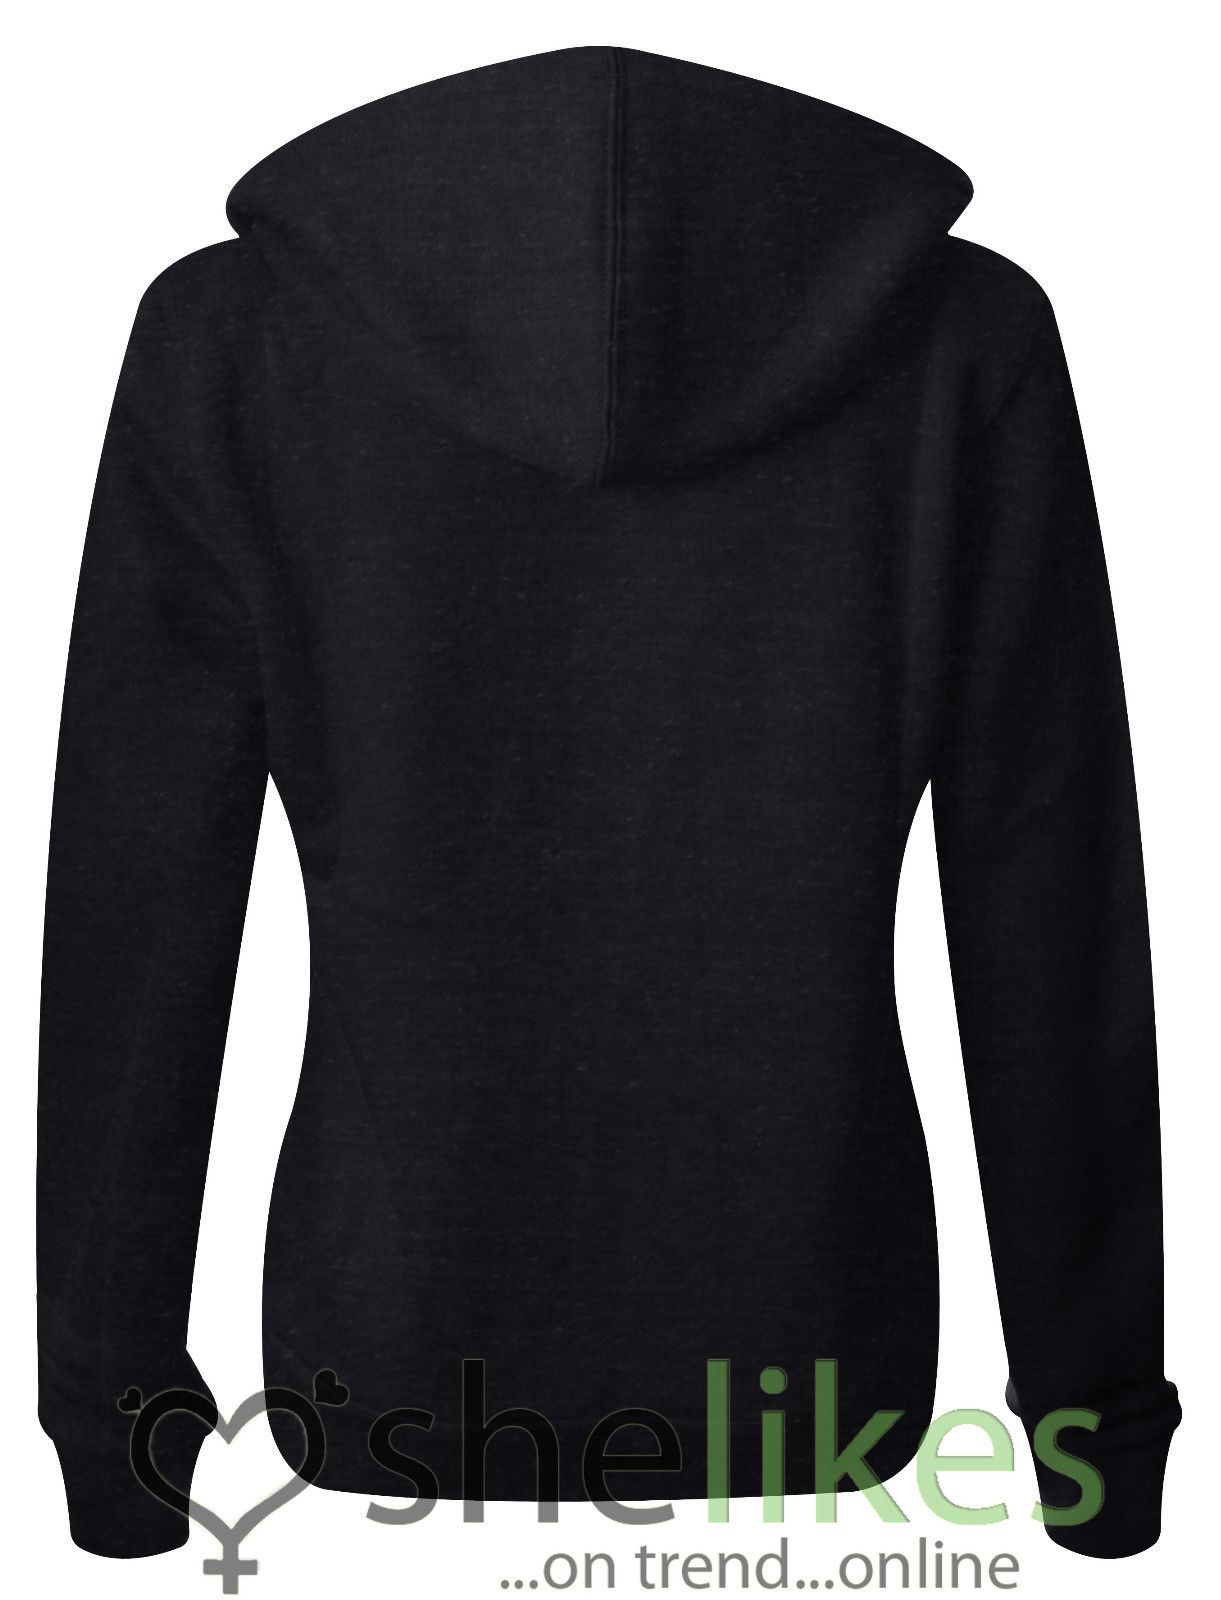 NEW-LADIES-WOMENS-PLUS-SIZE-FRONT-ZIP-HOODED-SWEATSHIRT-PLAIN-HOODIE-JACKET-TOP thumbnail 5